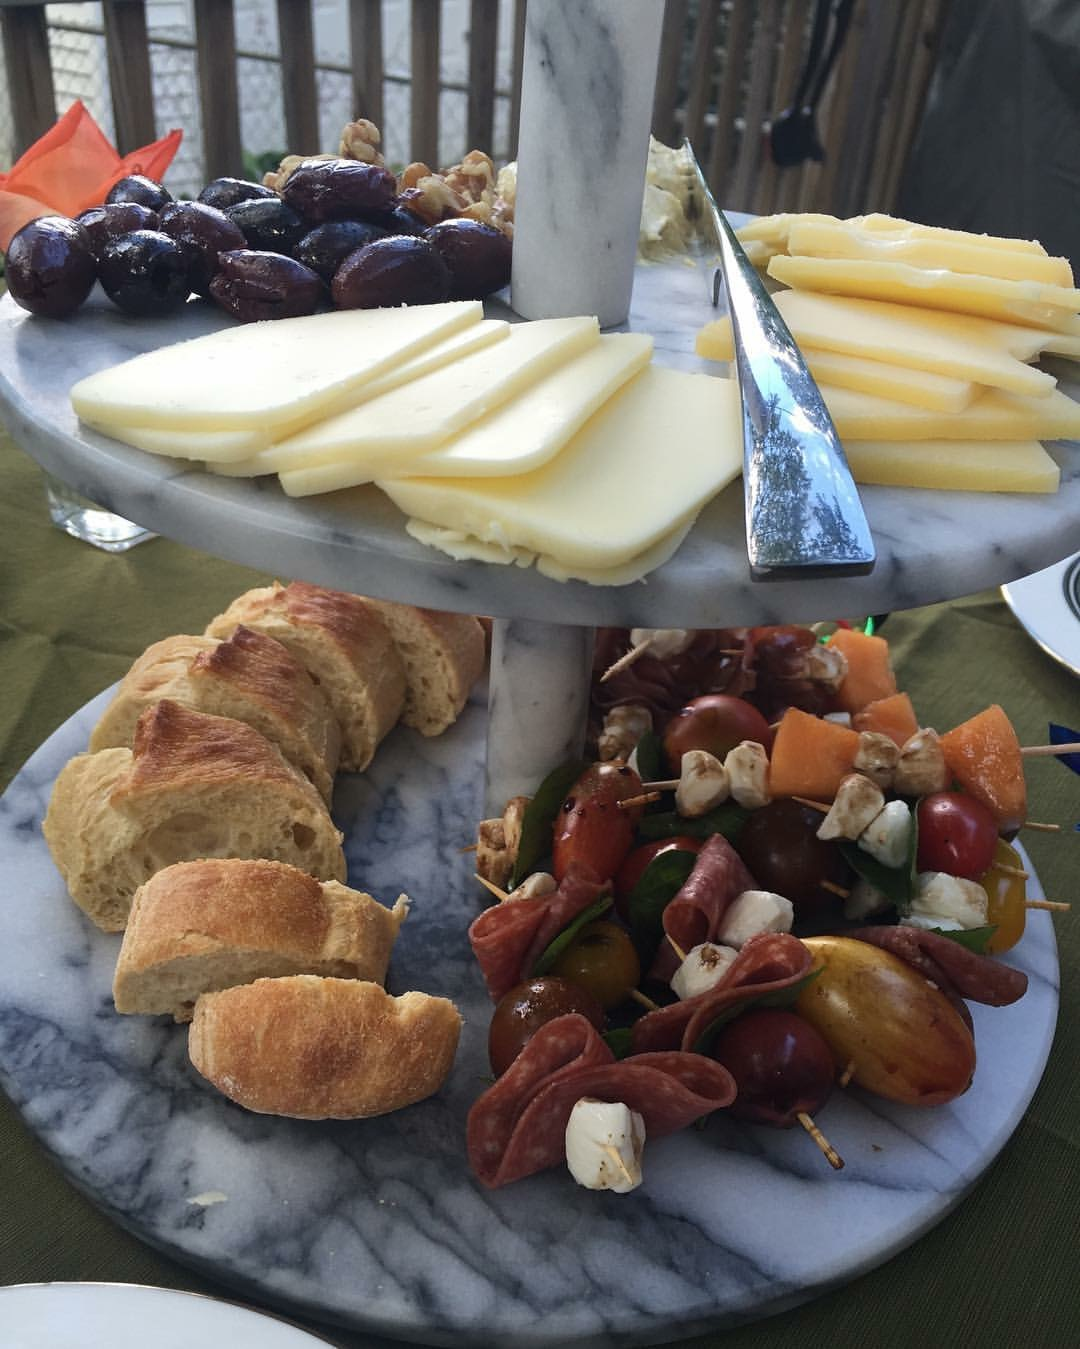 This is picture taken of an appetizer platter I created for my birthday last year. There are few things I love more than a good cheese plate. This one was complete with the melon, prosciutto, and mozzarella skewer recipe I linked to above. Seriously, so good and so pretty.